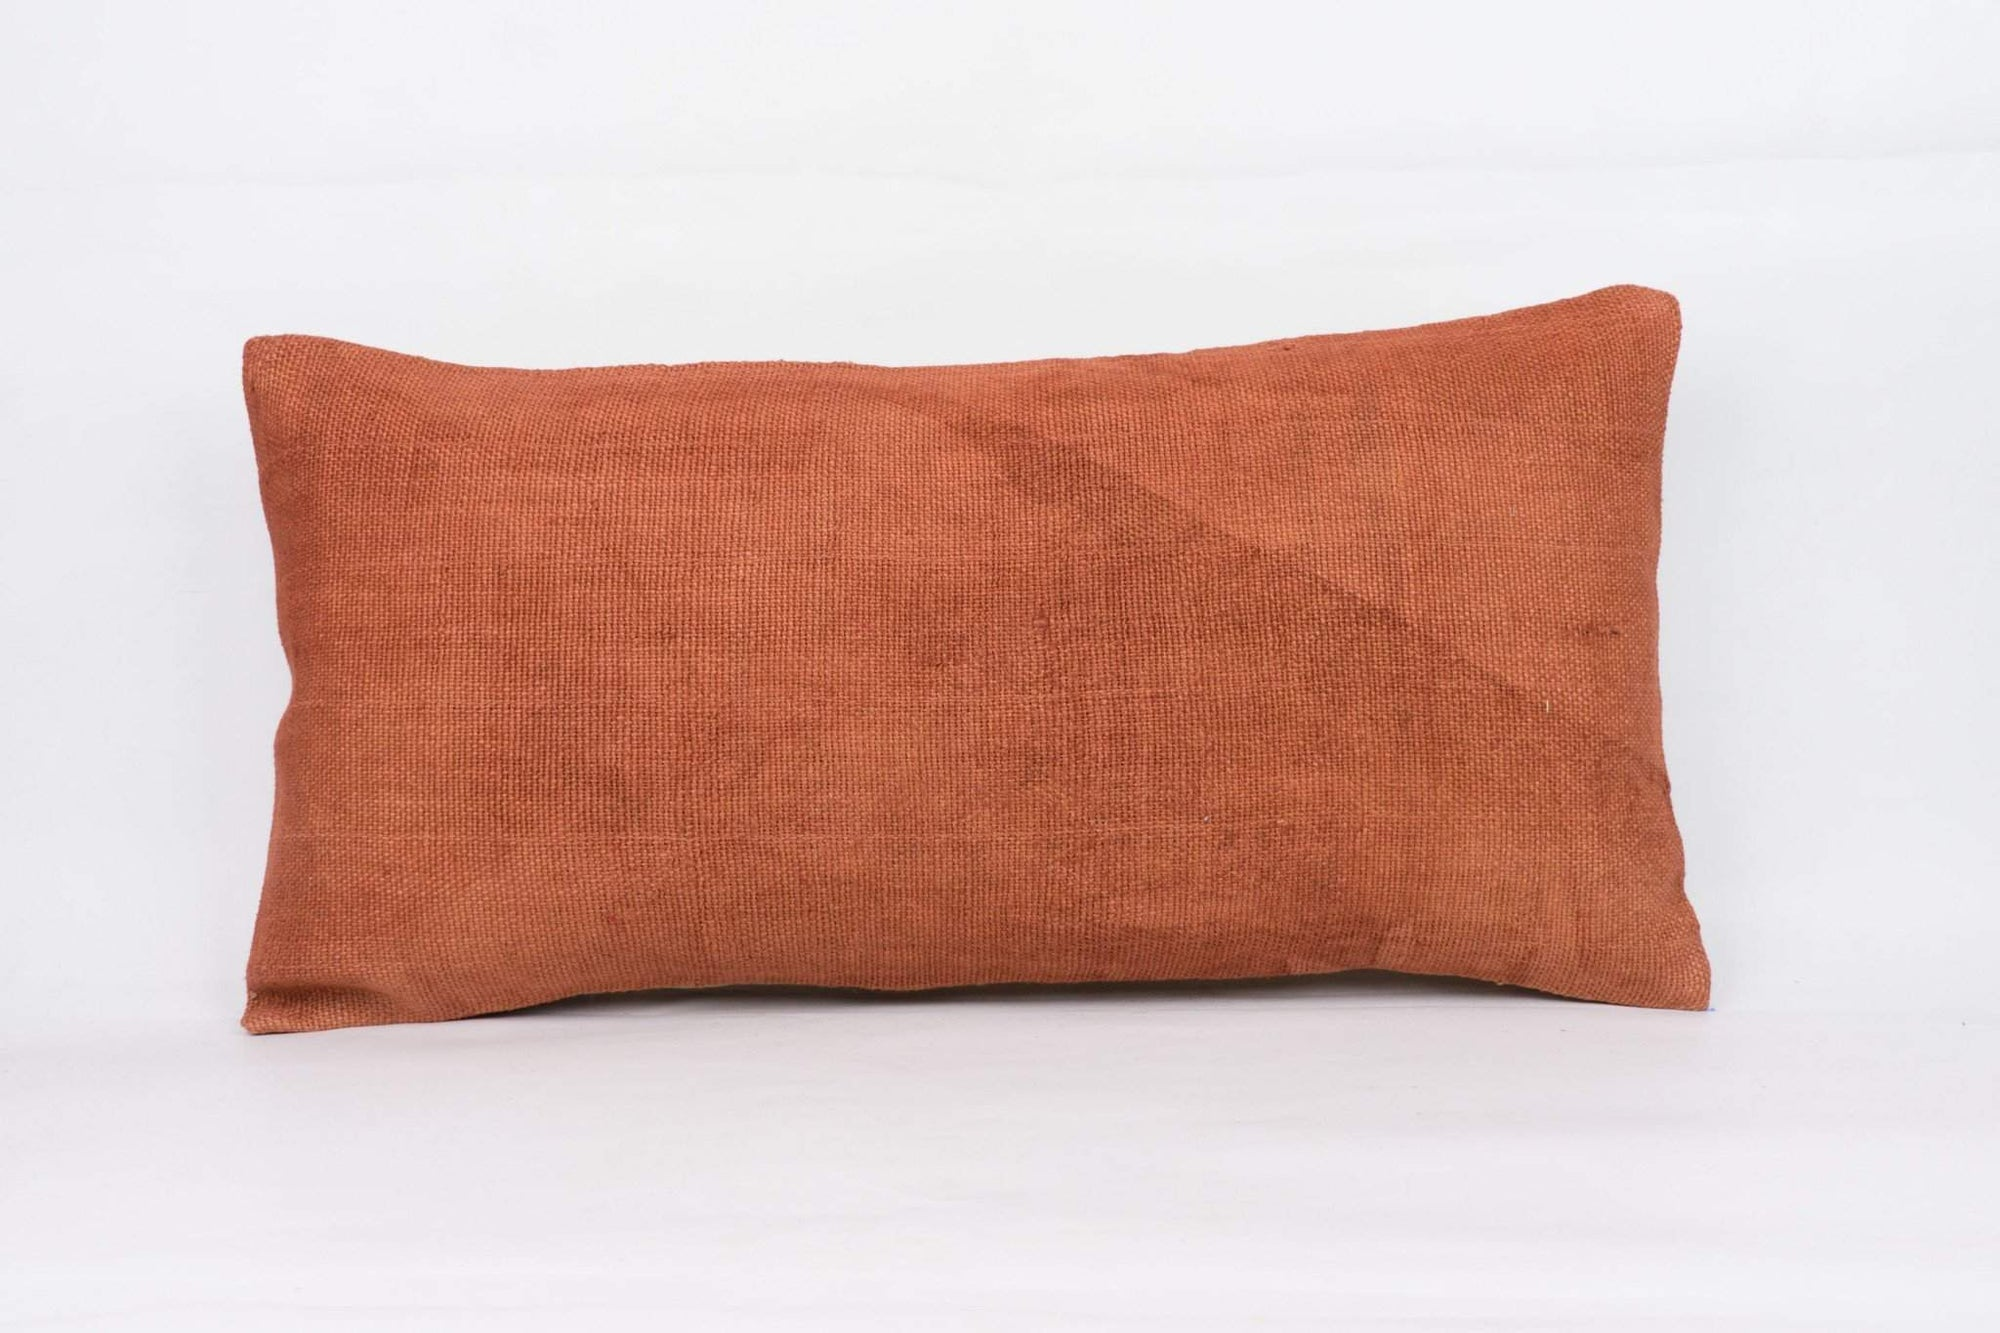 Plain Brown Kilim Pillow Cover 12x24 4196 - kilimpillowstore  - 1